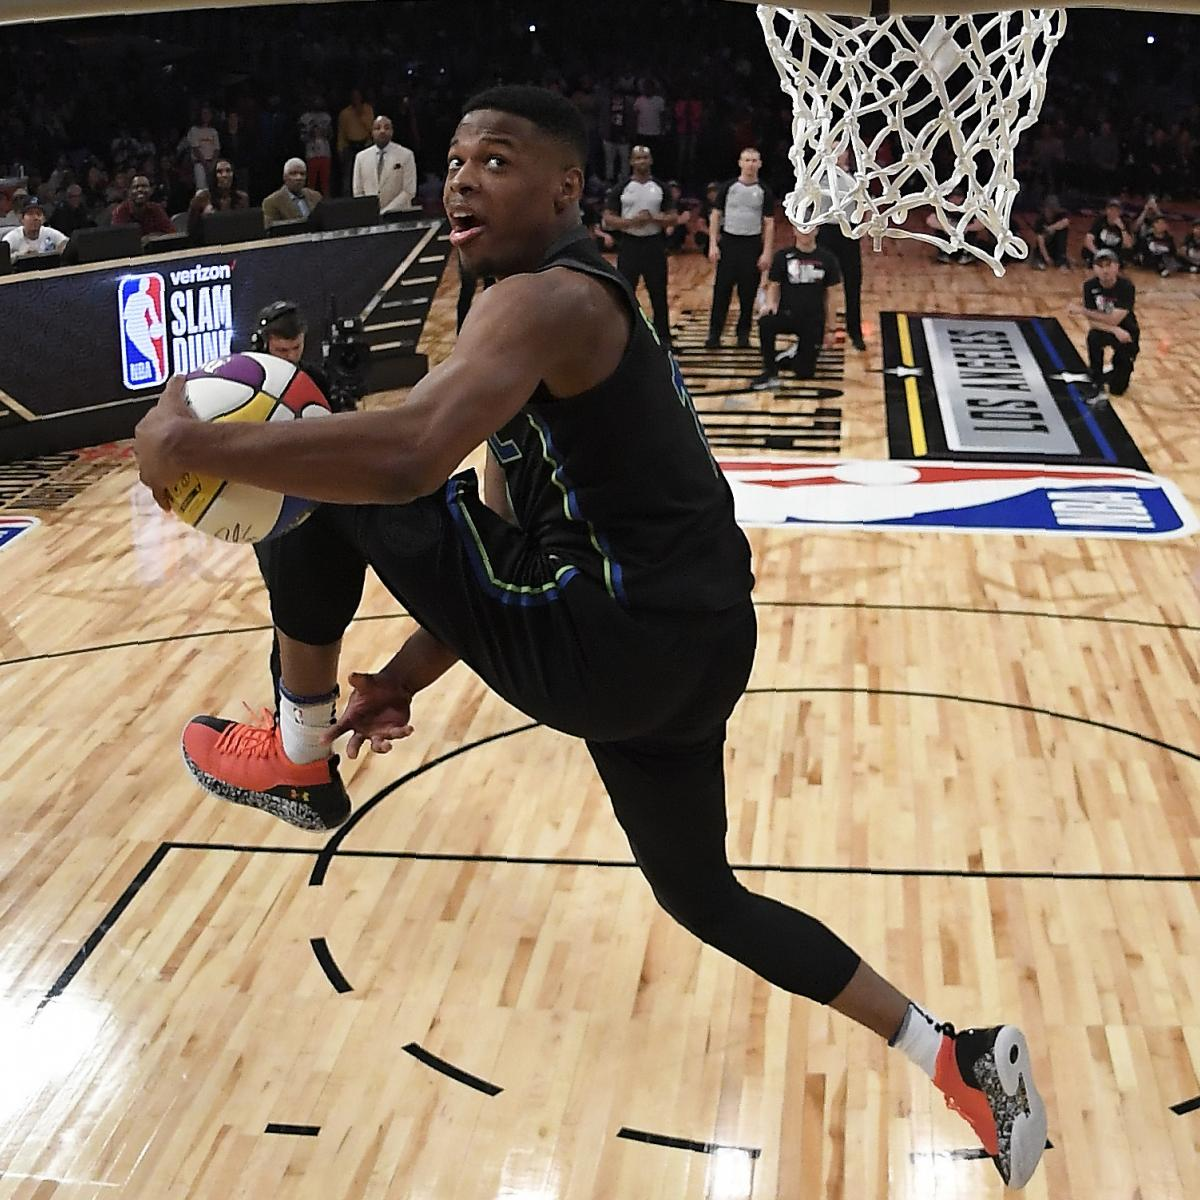 Nba Celebrity All Star Game 2019 Rosters Start Time Tv: NBA Slam Dunk Contest 2019: Odds And Predictions For